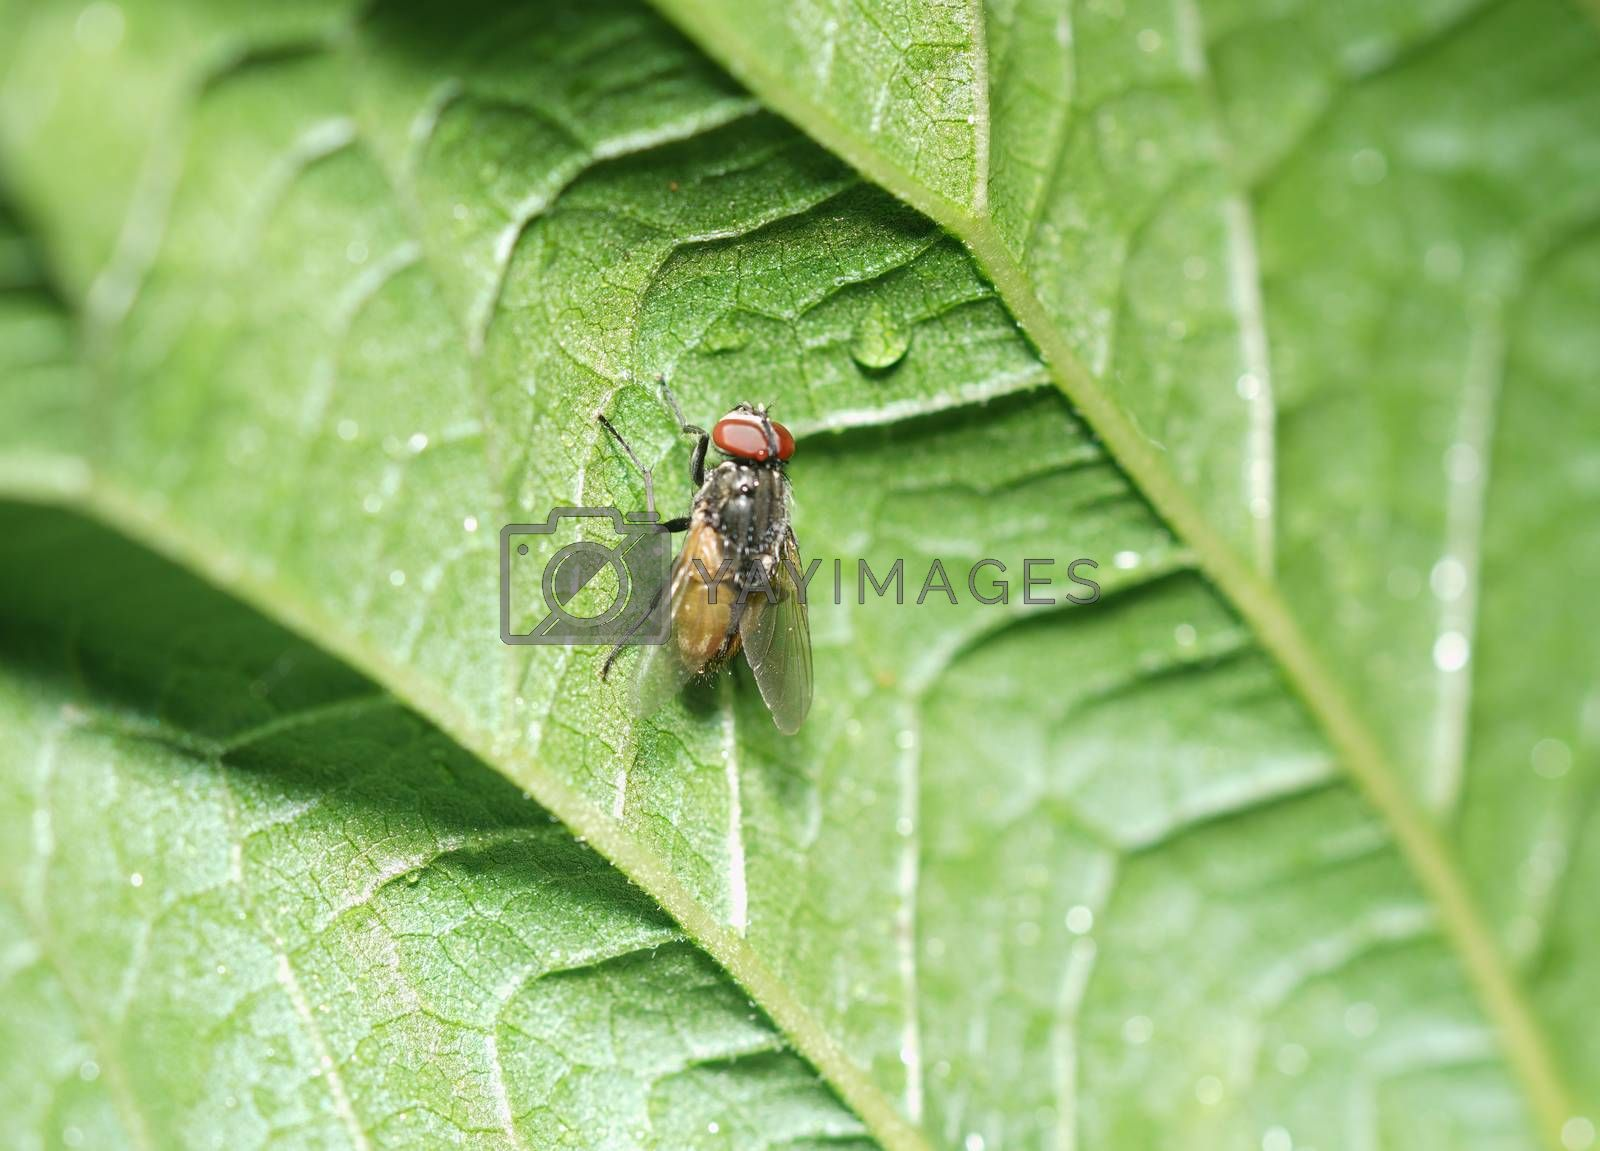 Close up of a fly caught on a green leaf.